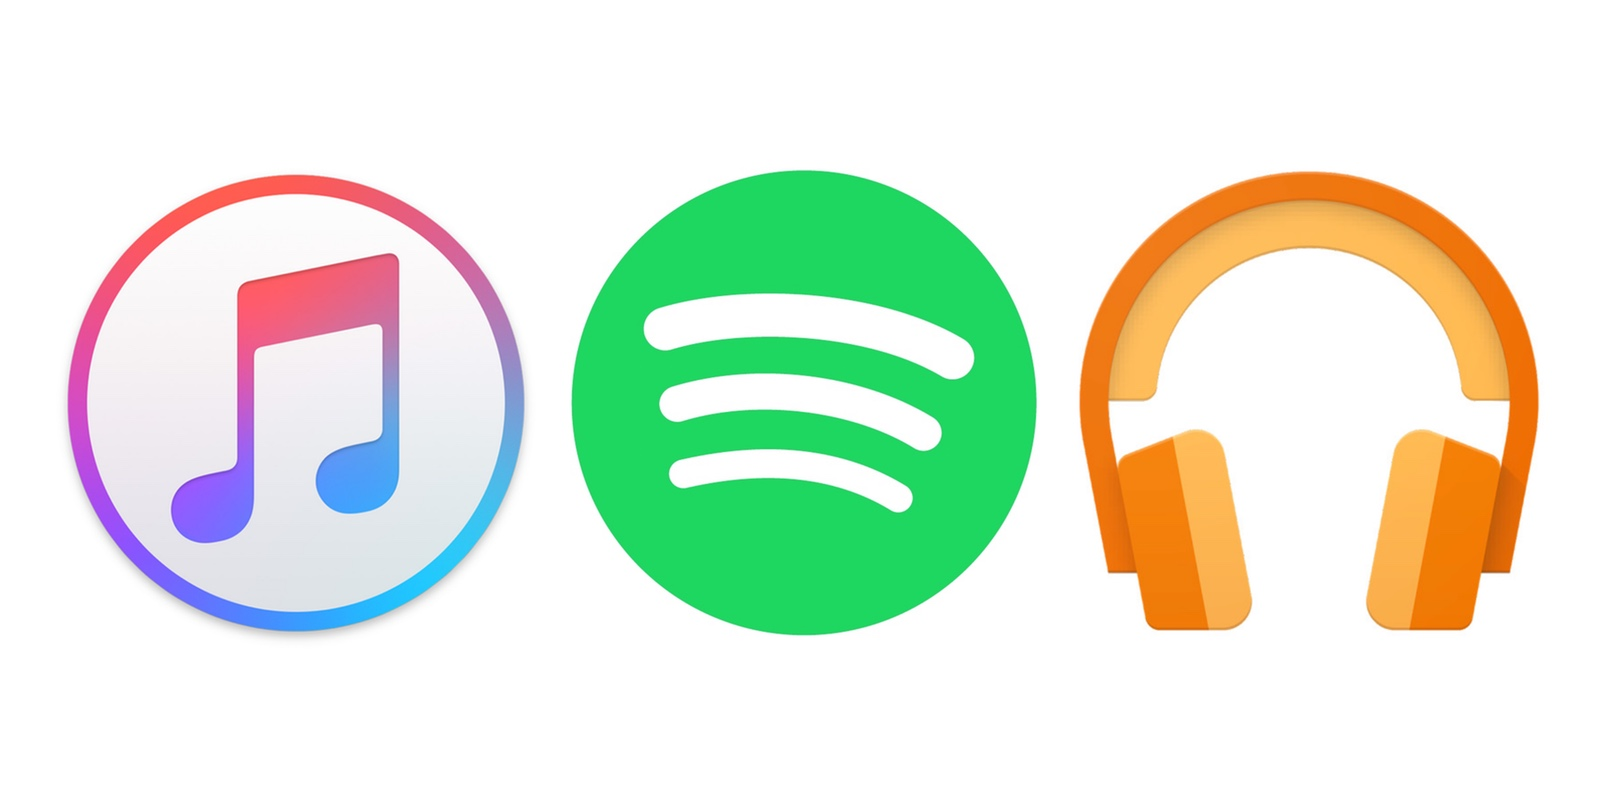 Why I'll pay for Apple Music, Spotify AND Google Play Music